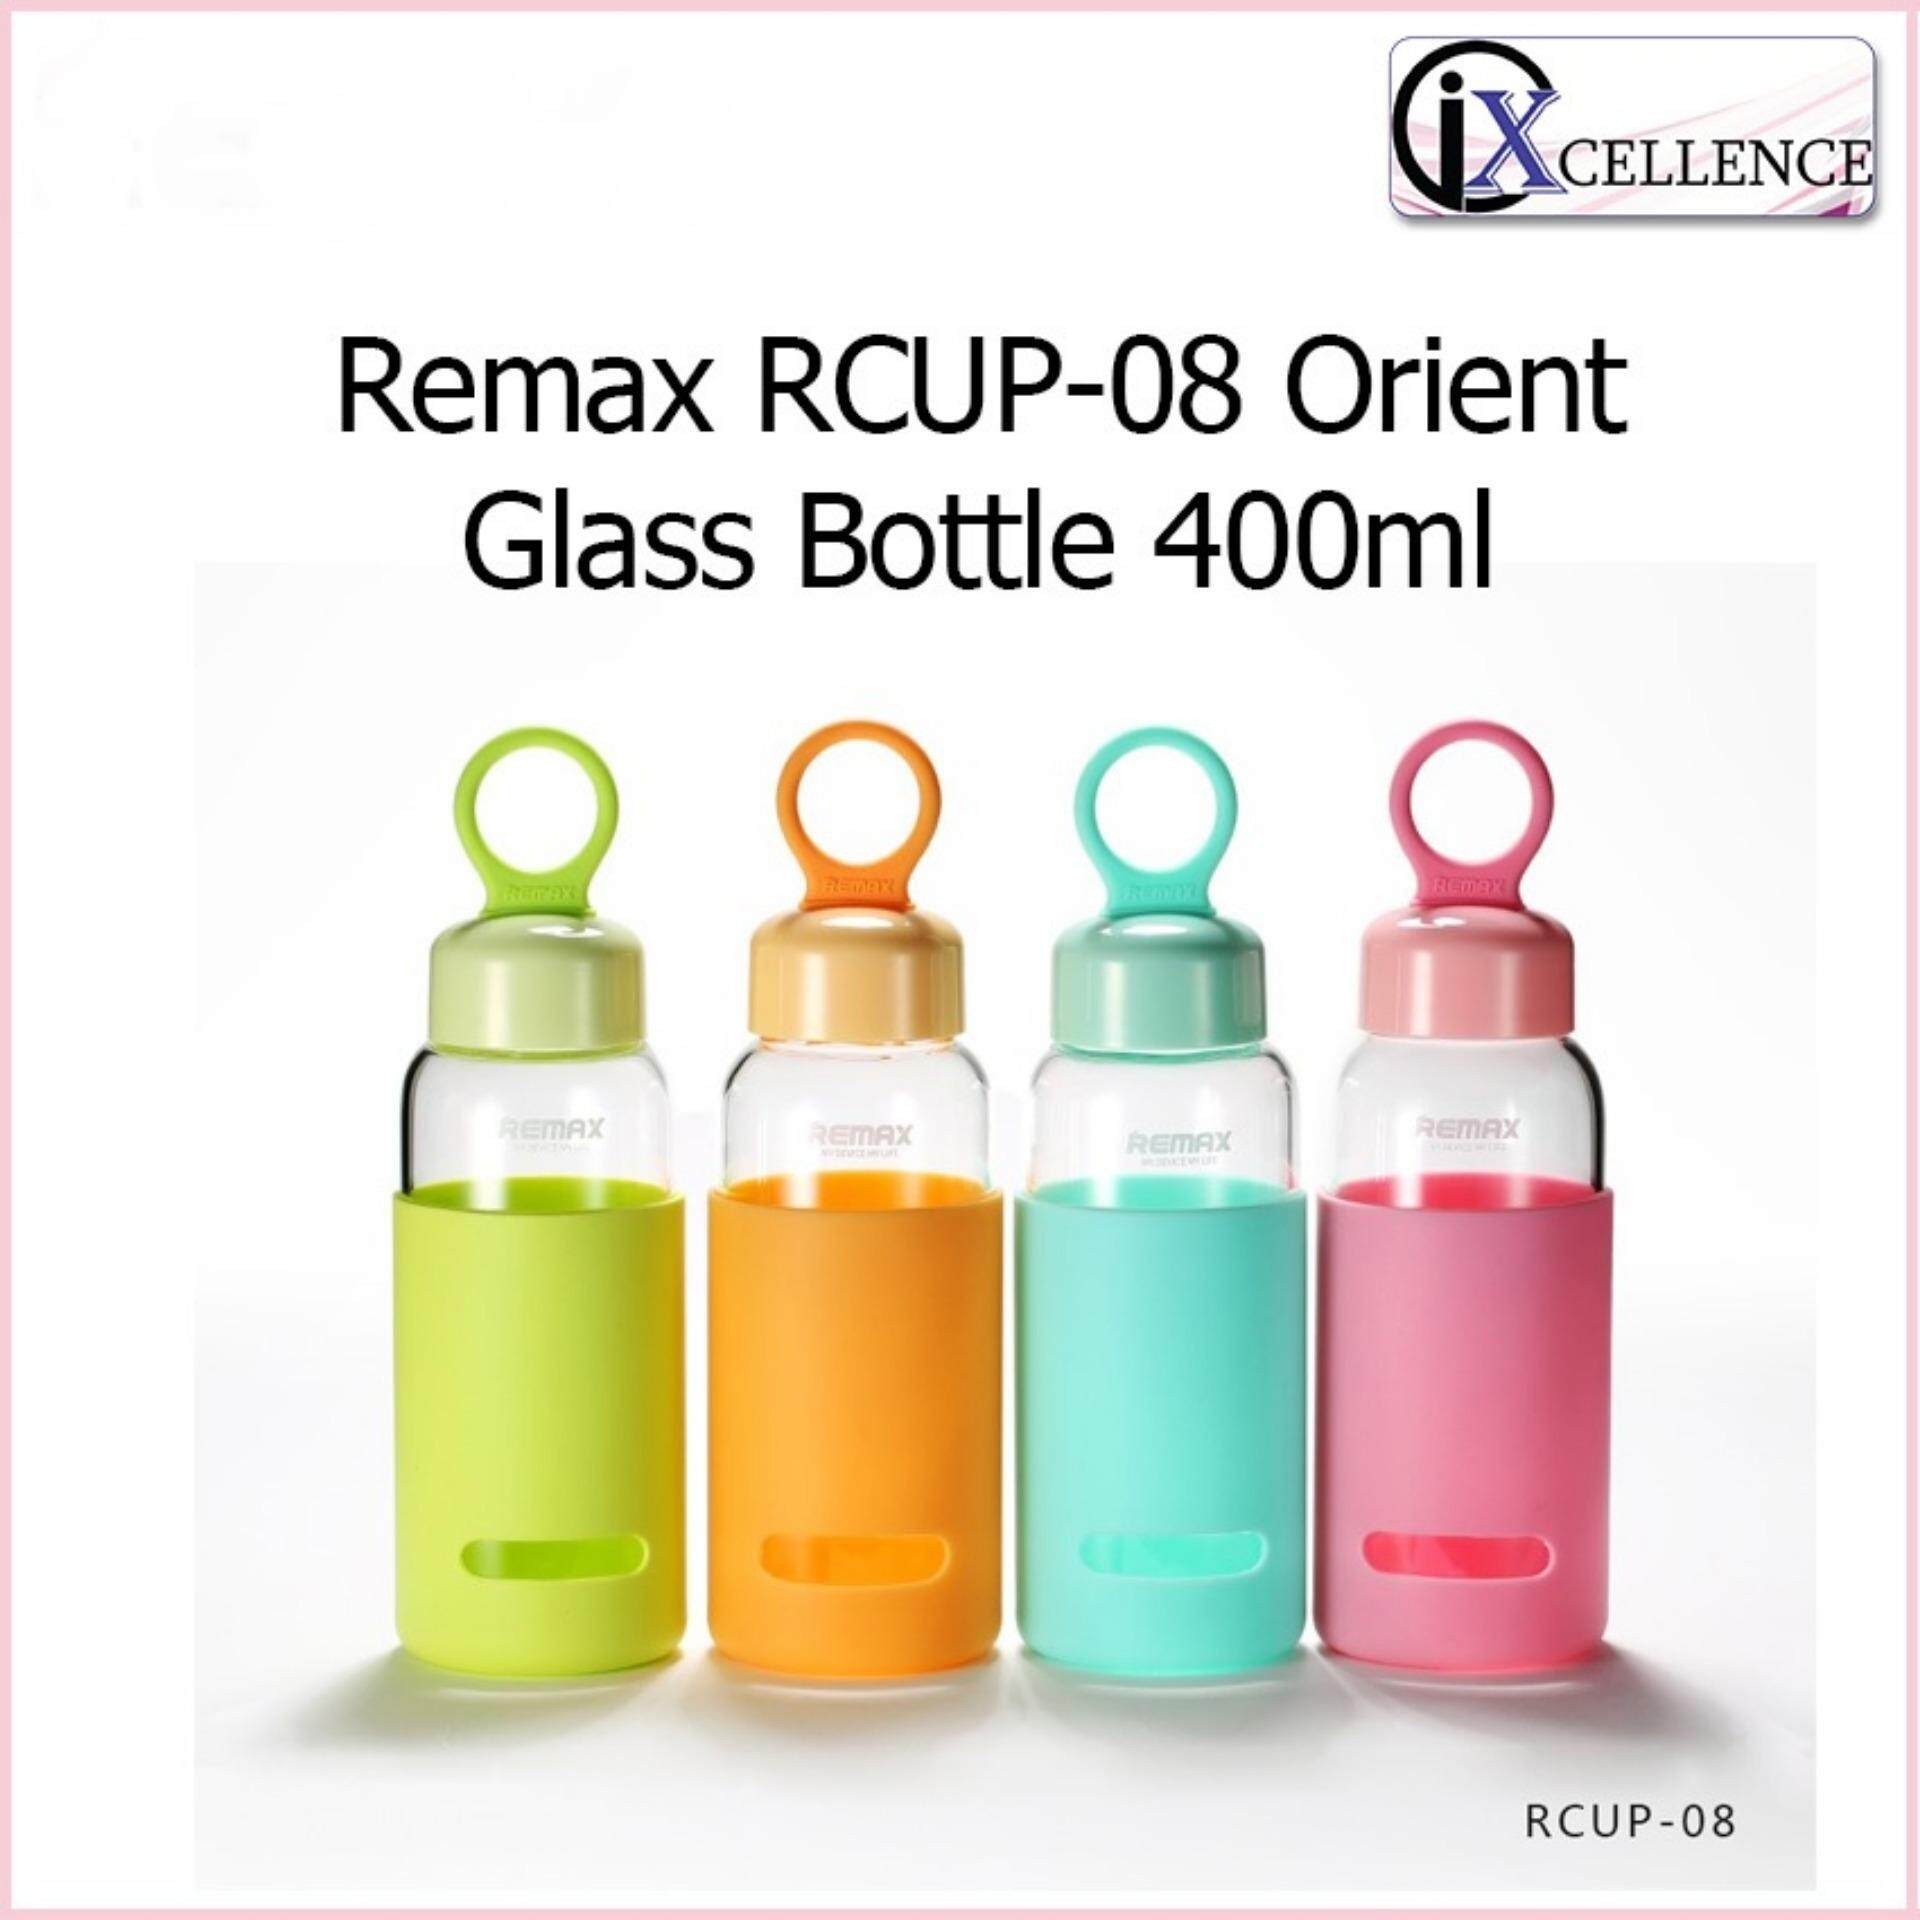 [IX] Remax RT-CUP08 Orient Glass Bottle 400ml (Green)